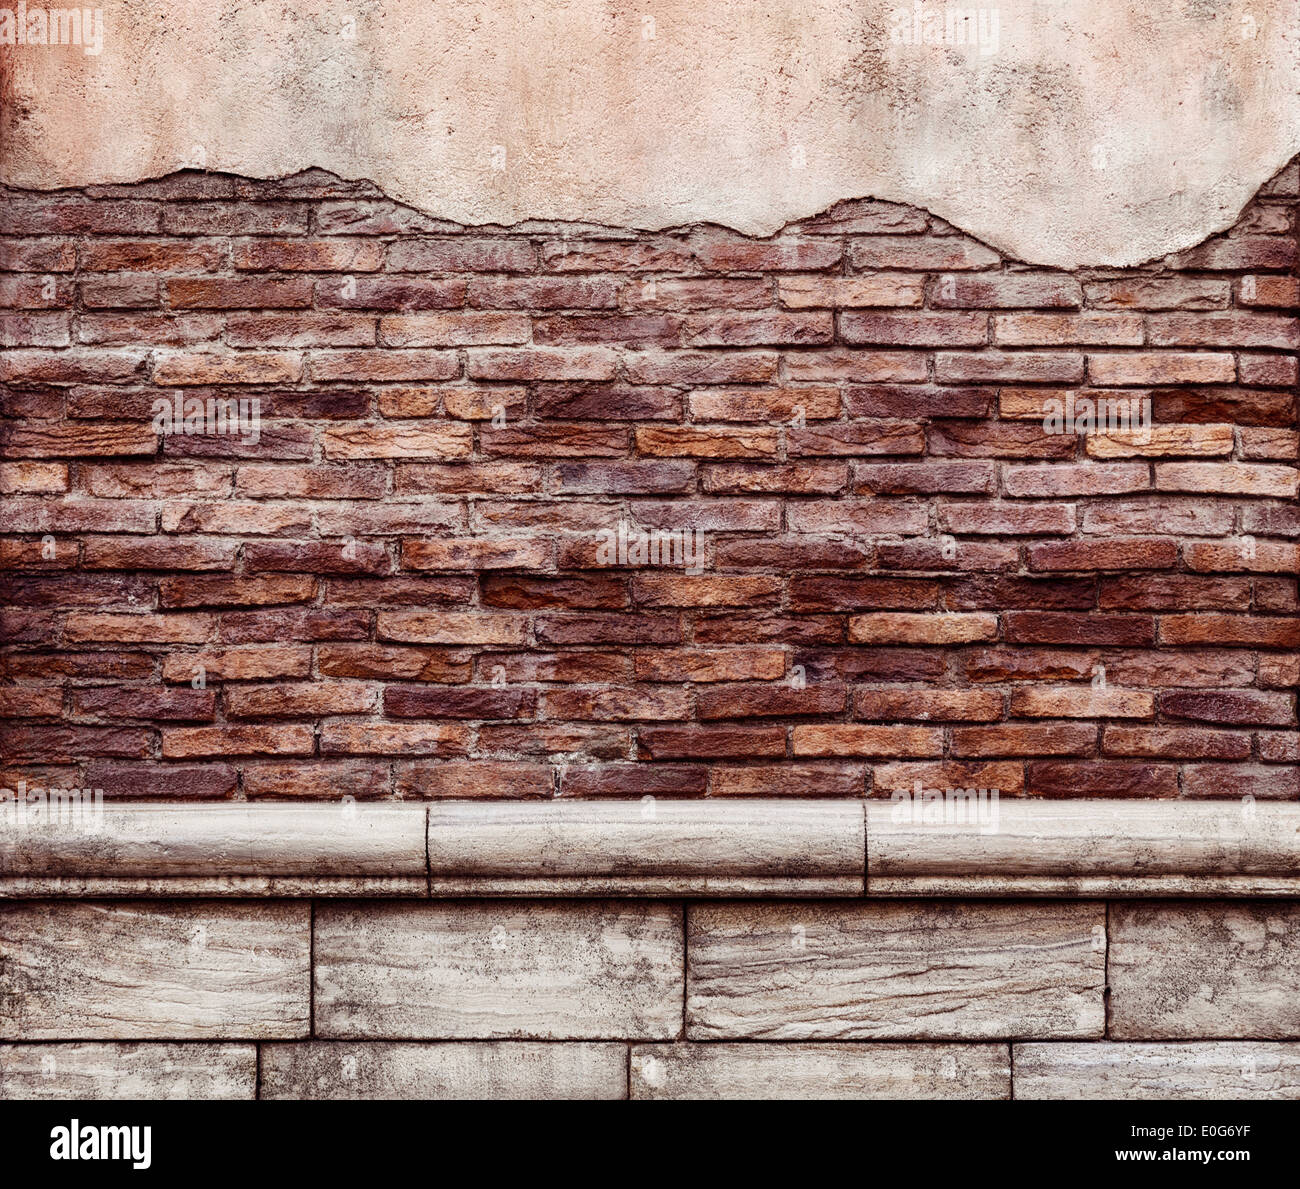 Old Grungy Brick Wall With Peeled Off Stucco Rustic